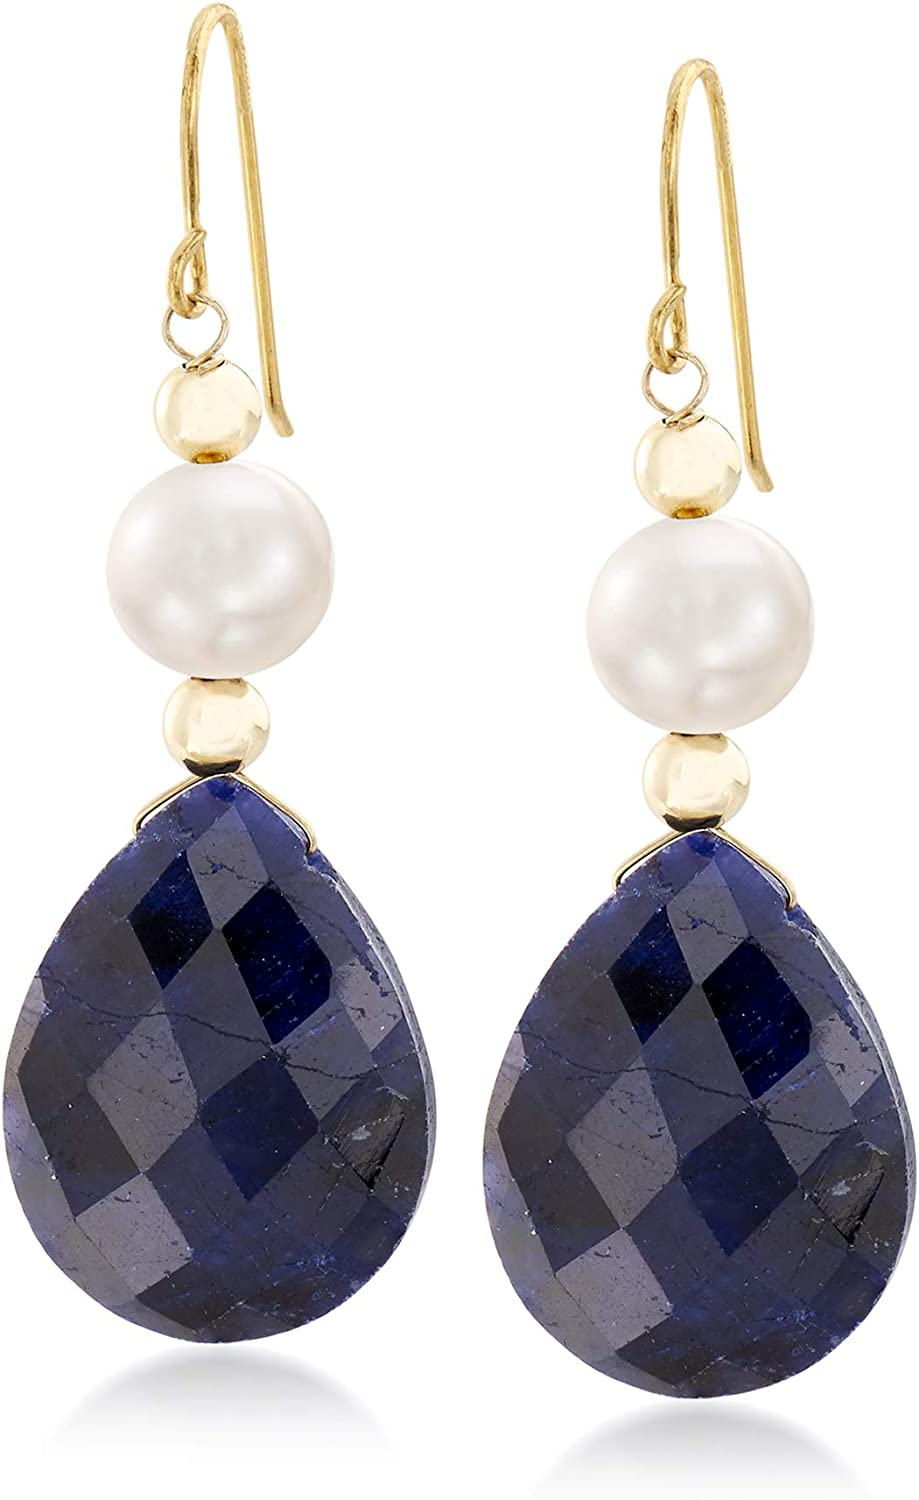 Ross-Simons 20.00 ct. t.w. Sapphire and Cultured Pearl Earrings in 14kt Yellow Gold